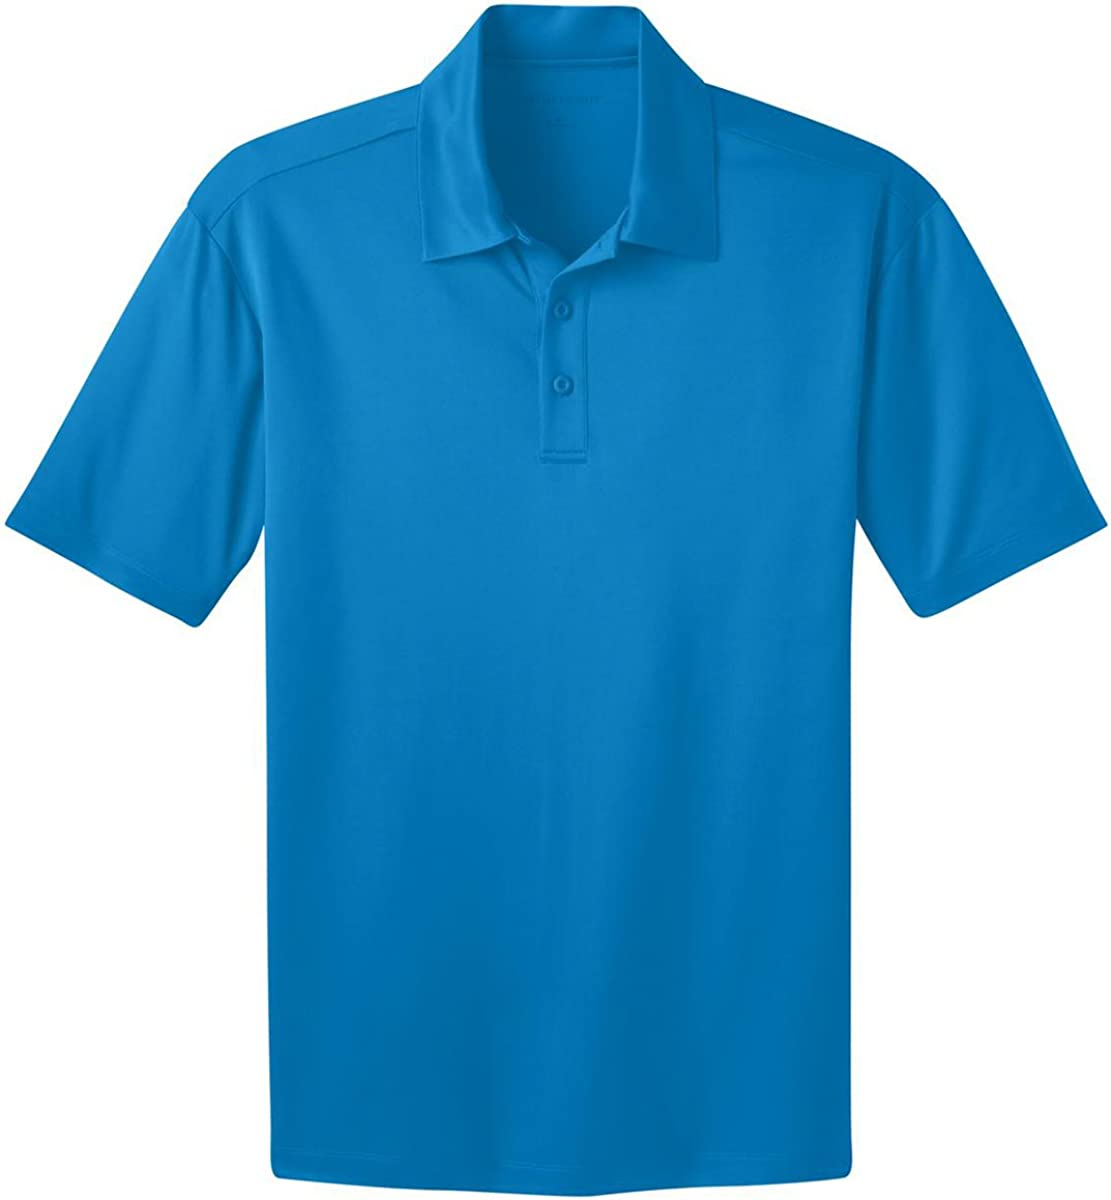 Port Authority Silk Touch Performance Polo Shirt-XS (Brilliant Blue)